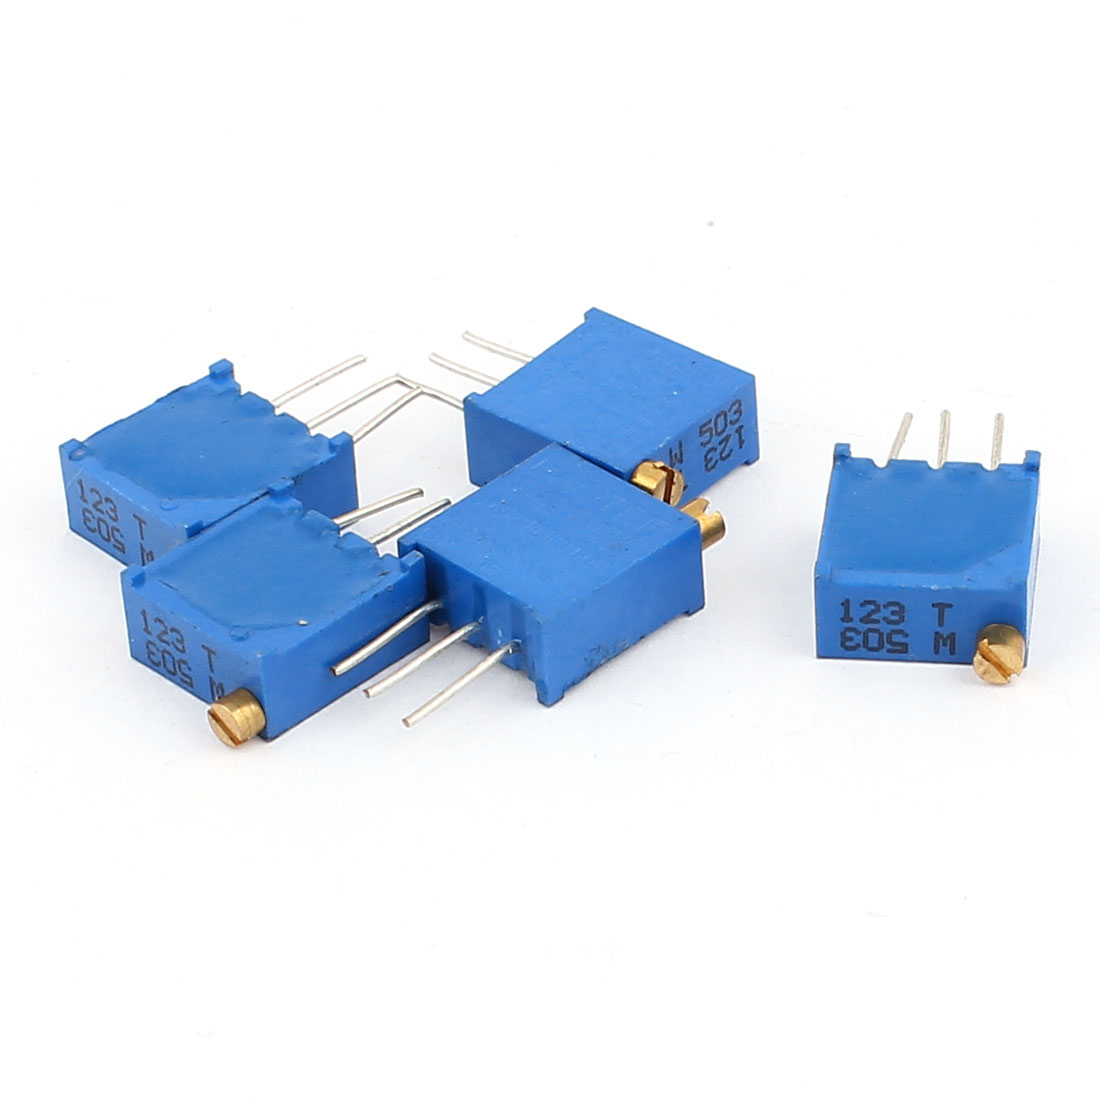 5 Pcs 3296W 50K ohm Multiturn Potentiometer Pot Variable Resistor